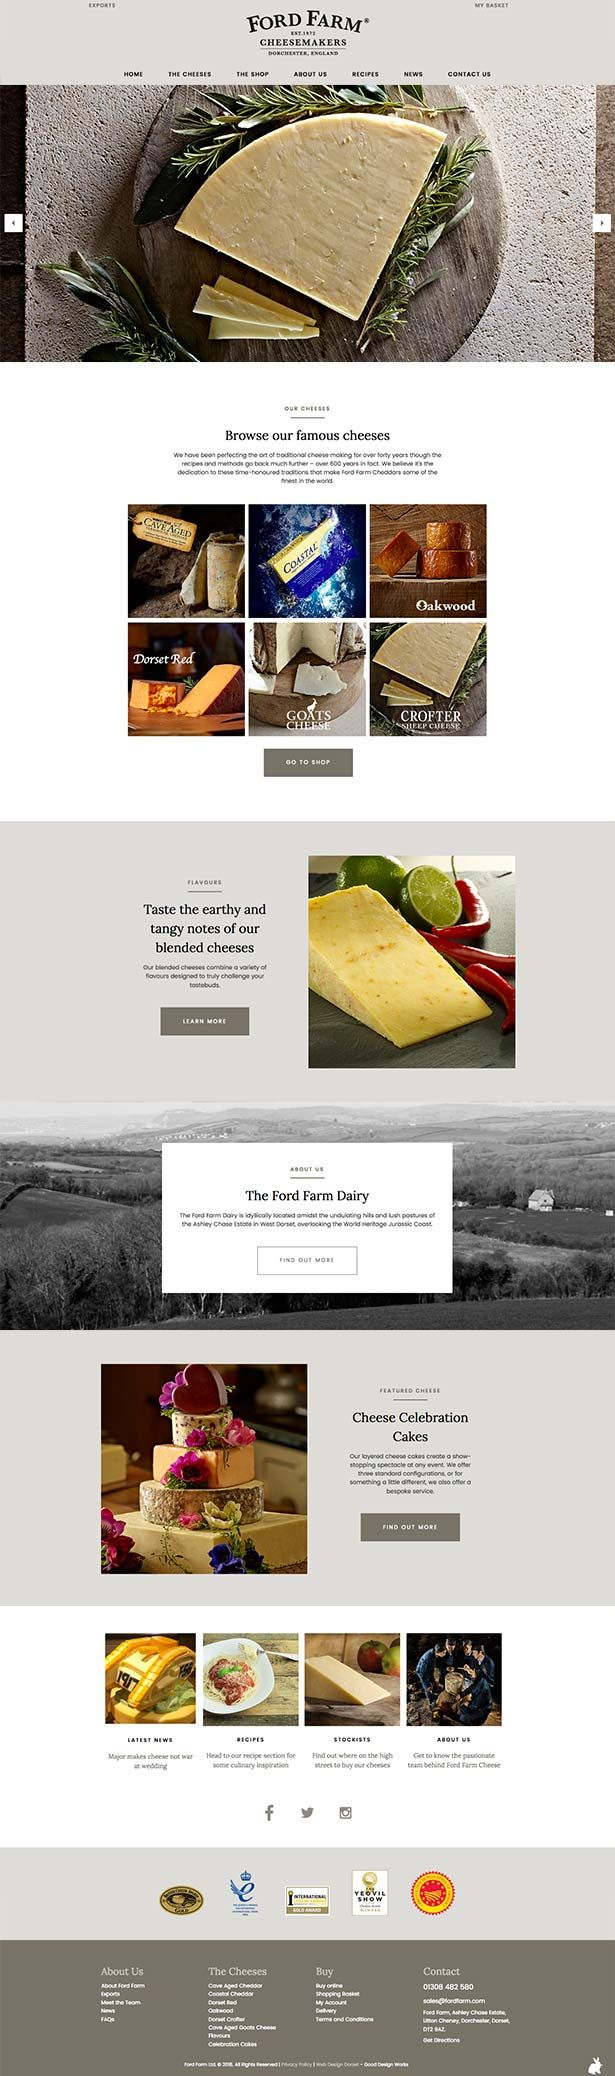 Website design for Ford Farm Cheesemakers by Good Design Works